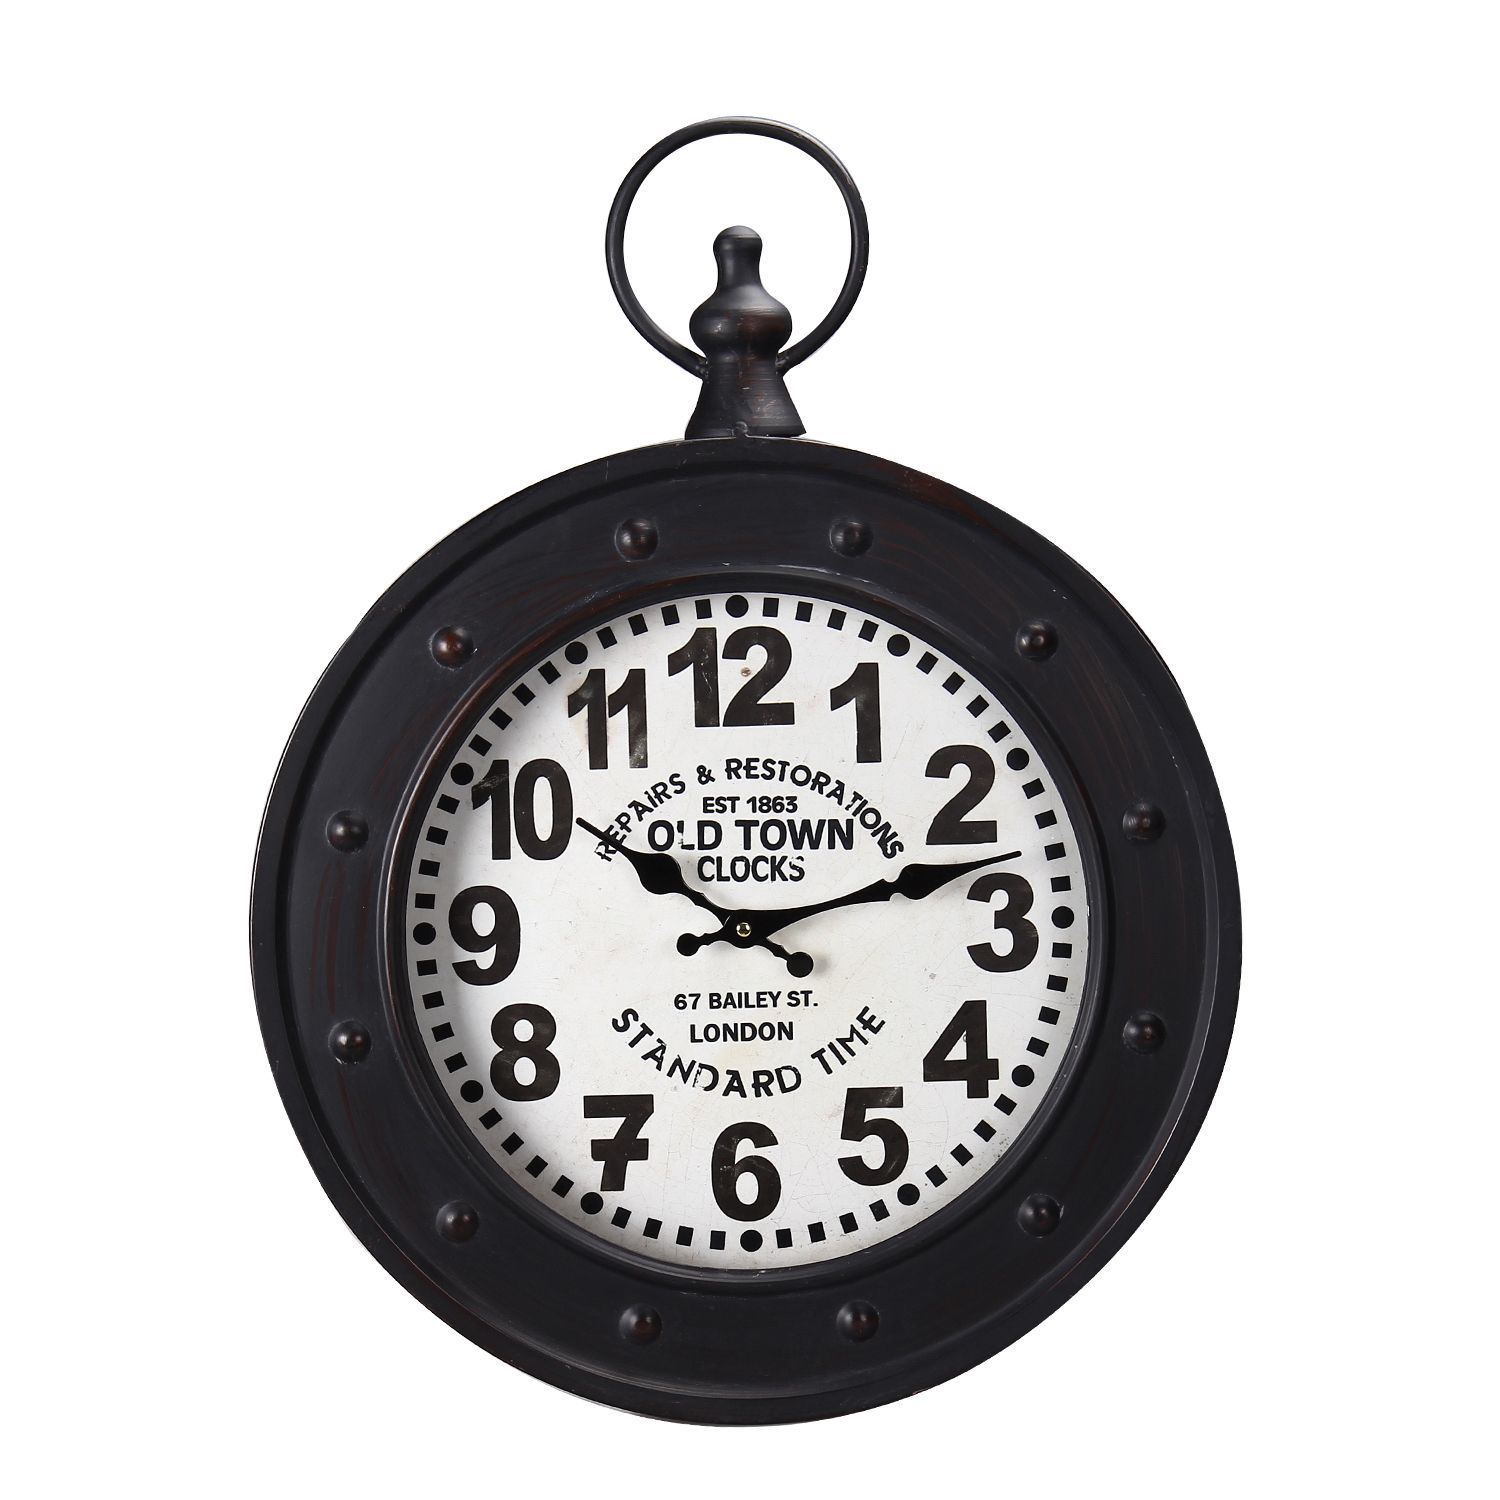 This handsome vintage inspired wall clock has a classic round this handsome vintage inspired wall clock has a classic round shape with a faux riveted frame and a pocket watch winding crown fob detail amipublicfo Choice Image